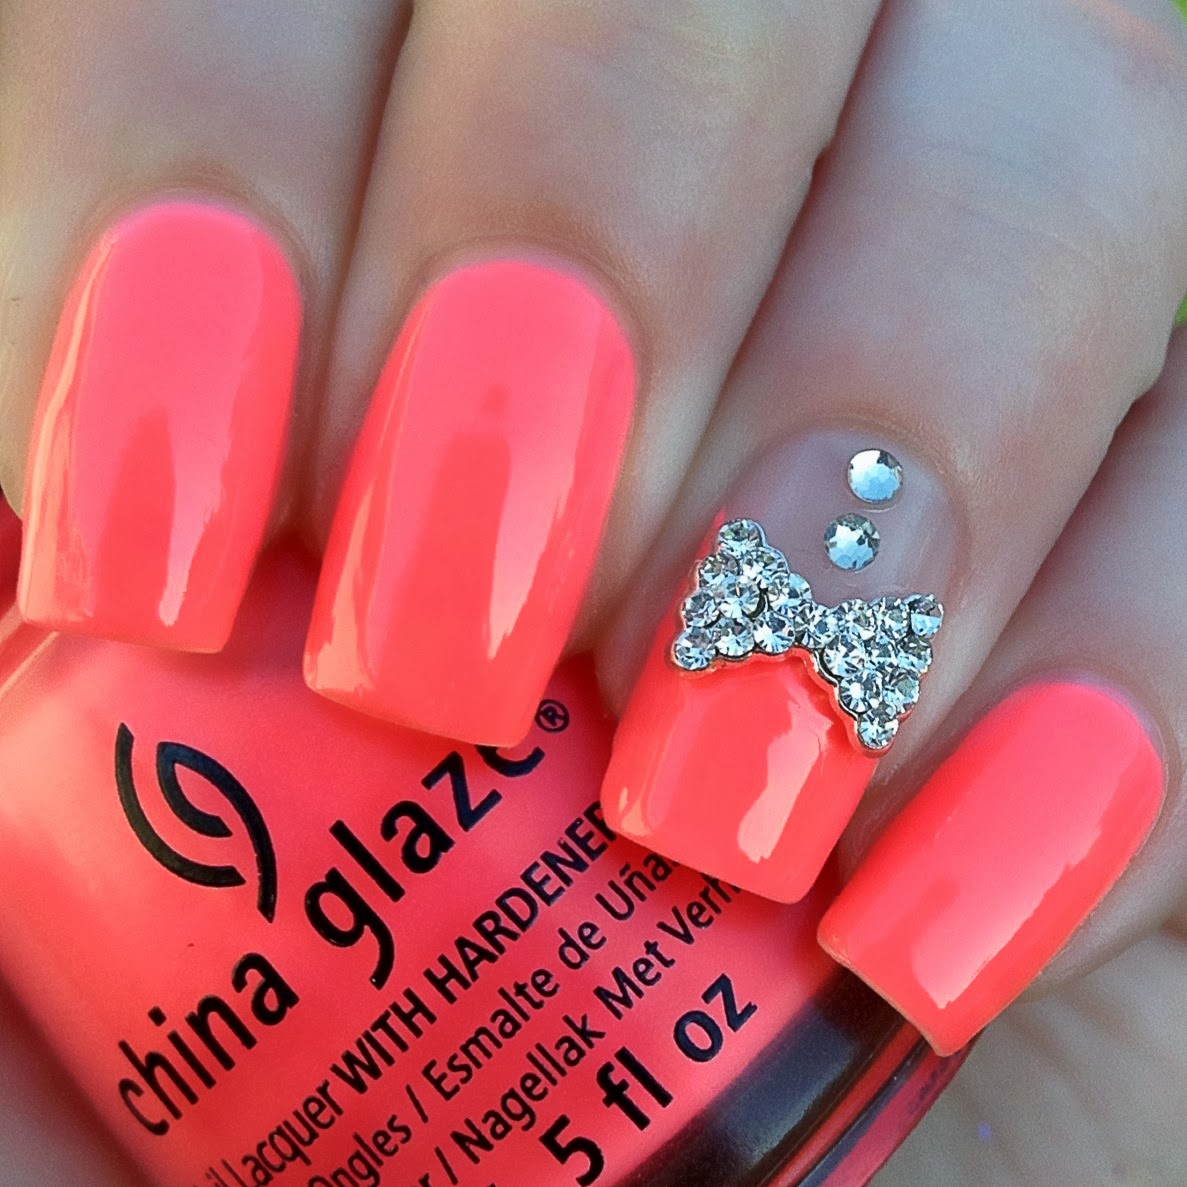 Cute Nail Art Ideas: Nails Nails Nails: Nail Art Review.-Curved Rhinestone Bows